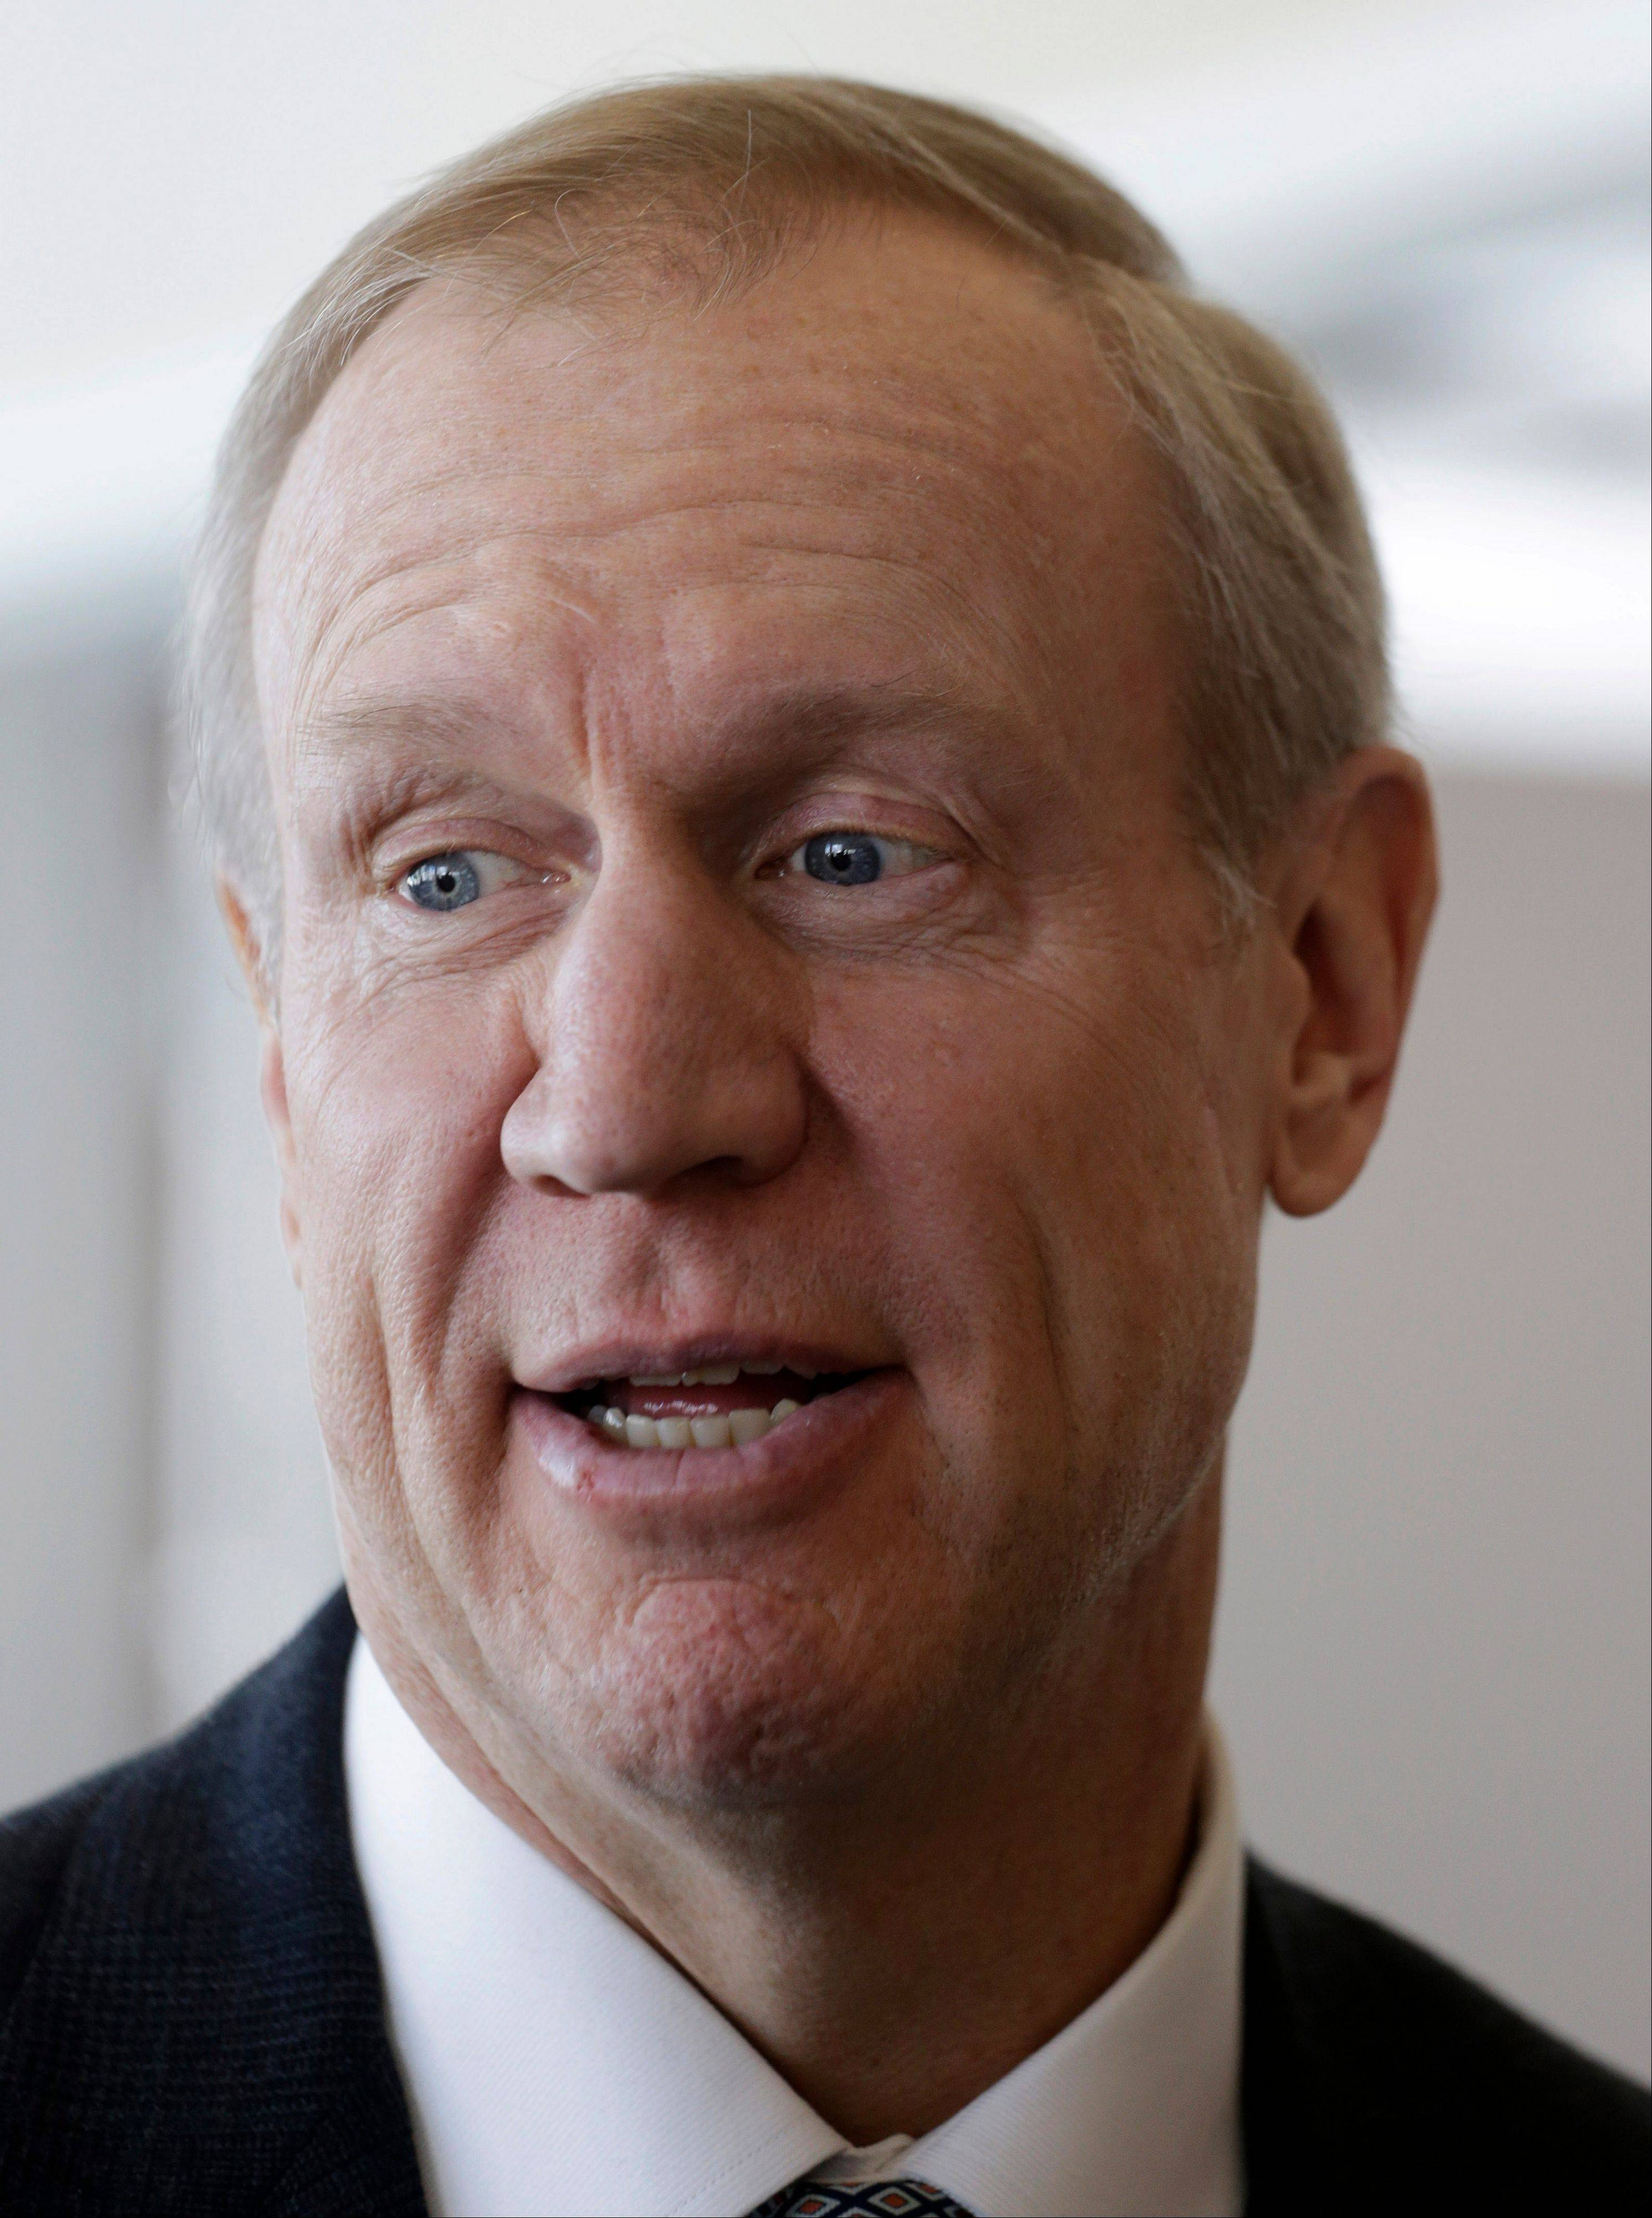 Rauner flips stance on minimum wage